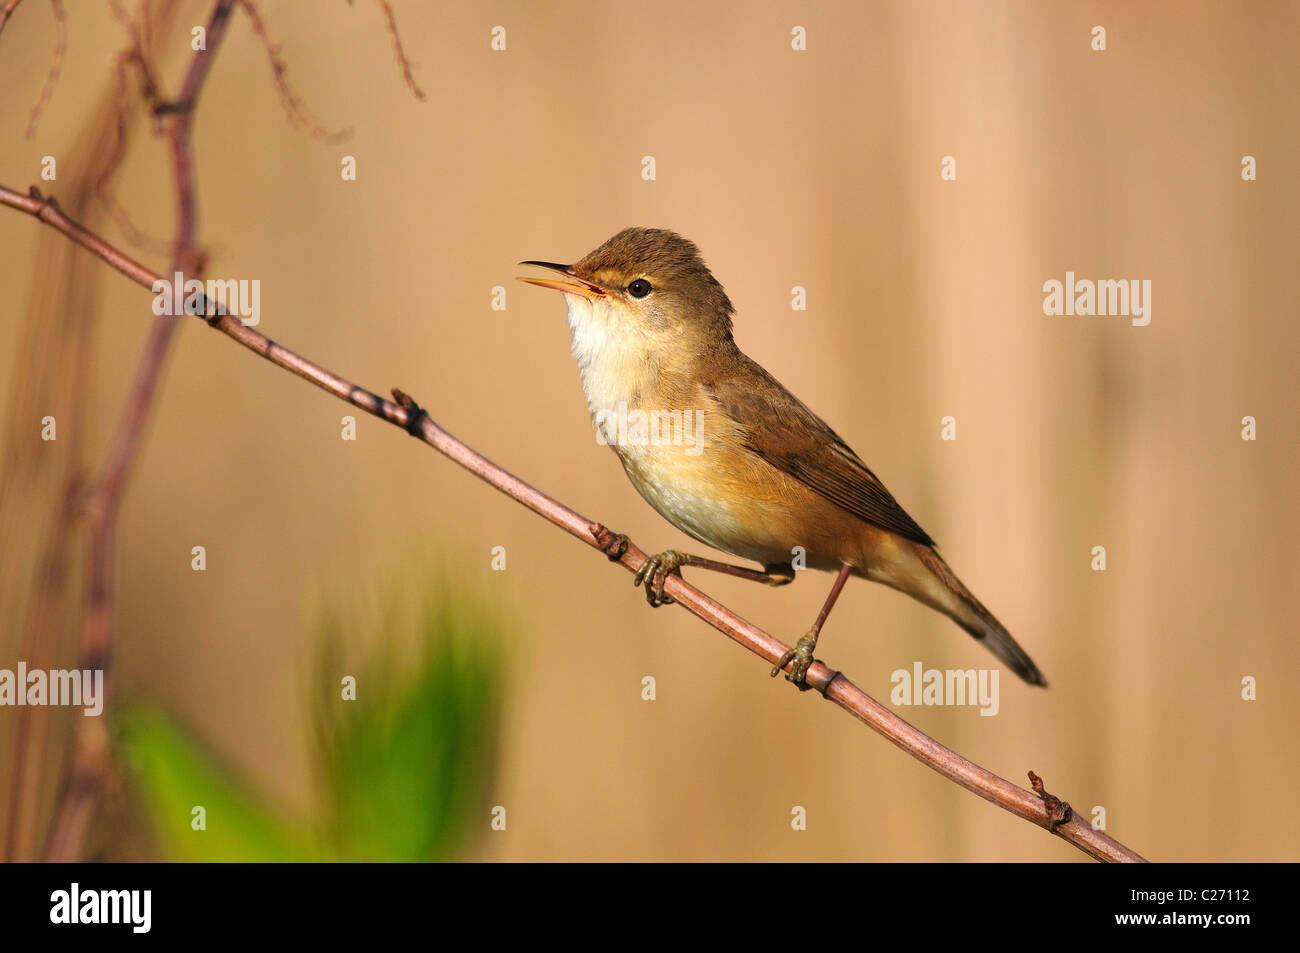 A Reed Warbler Singing From A Twig In A Reedbed Uk Stock Photo Alamy